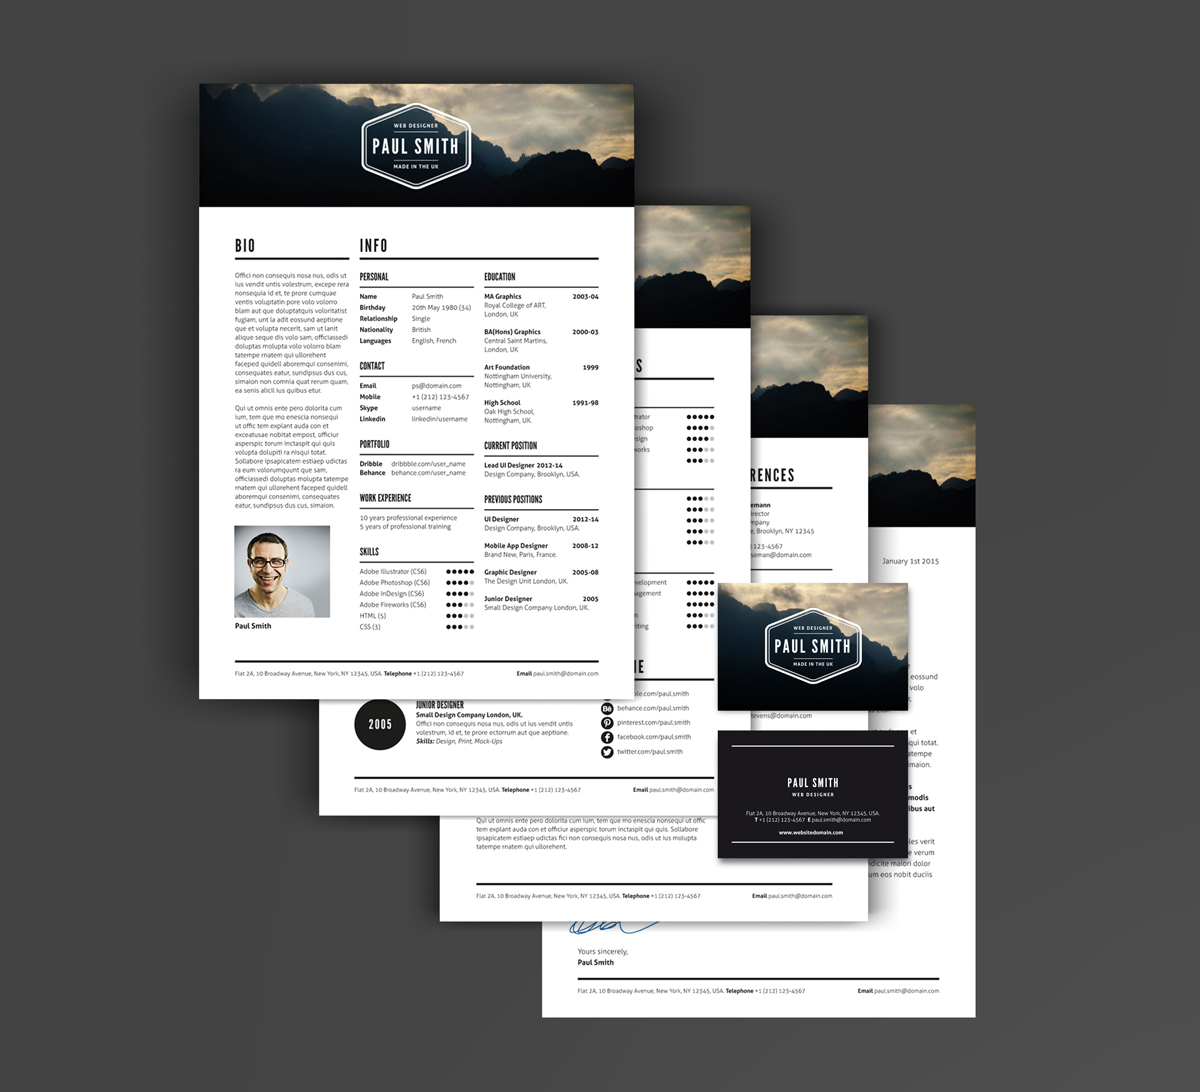 Poster design jobs uk - Job Resume Template Features Cover Letter And Three Resume Pages